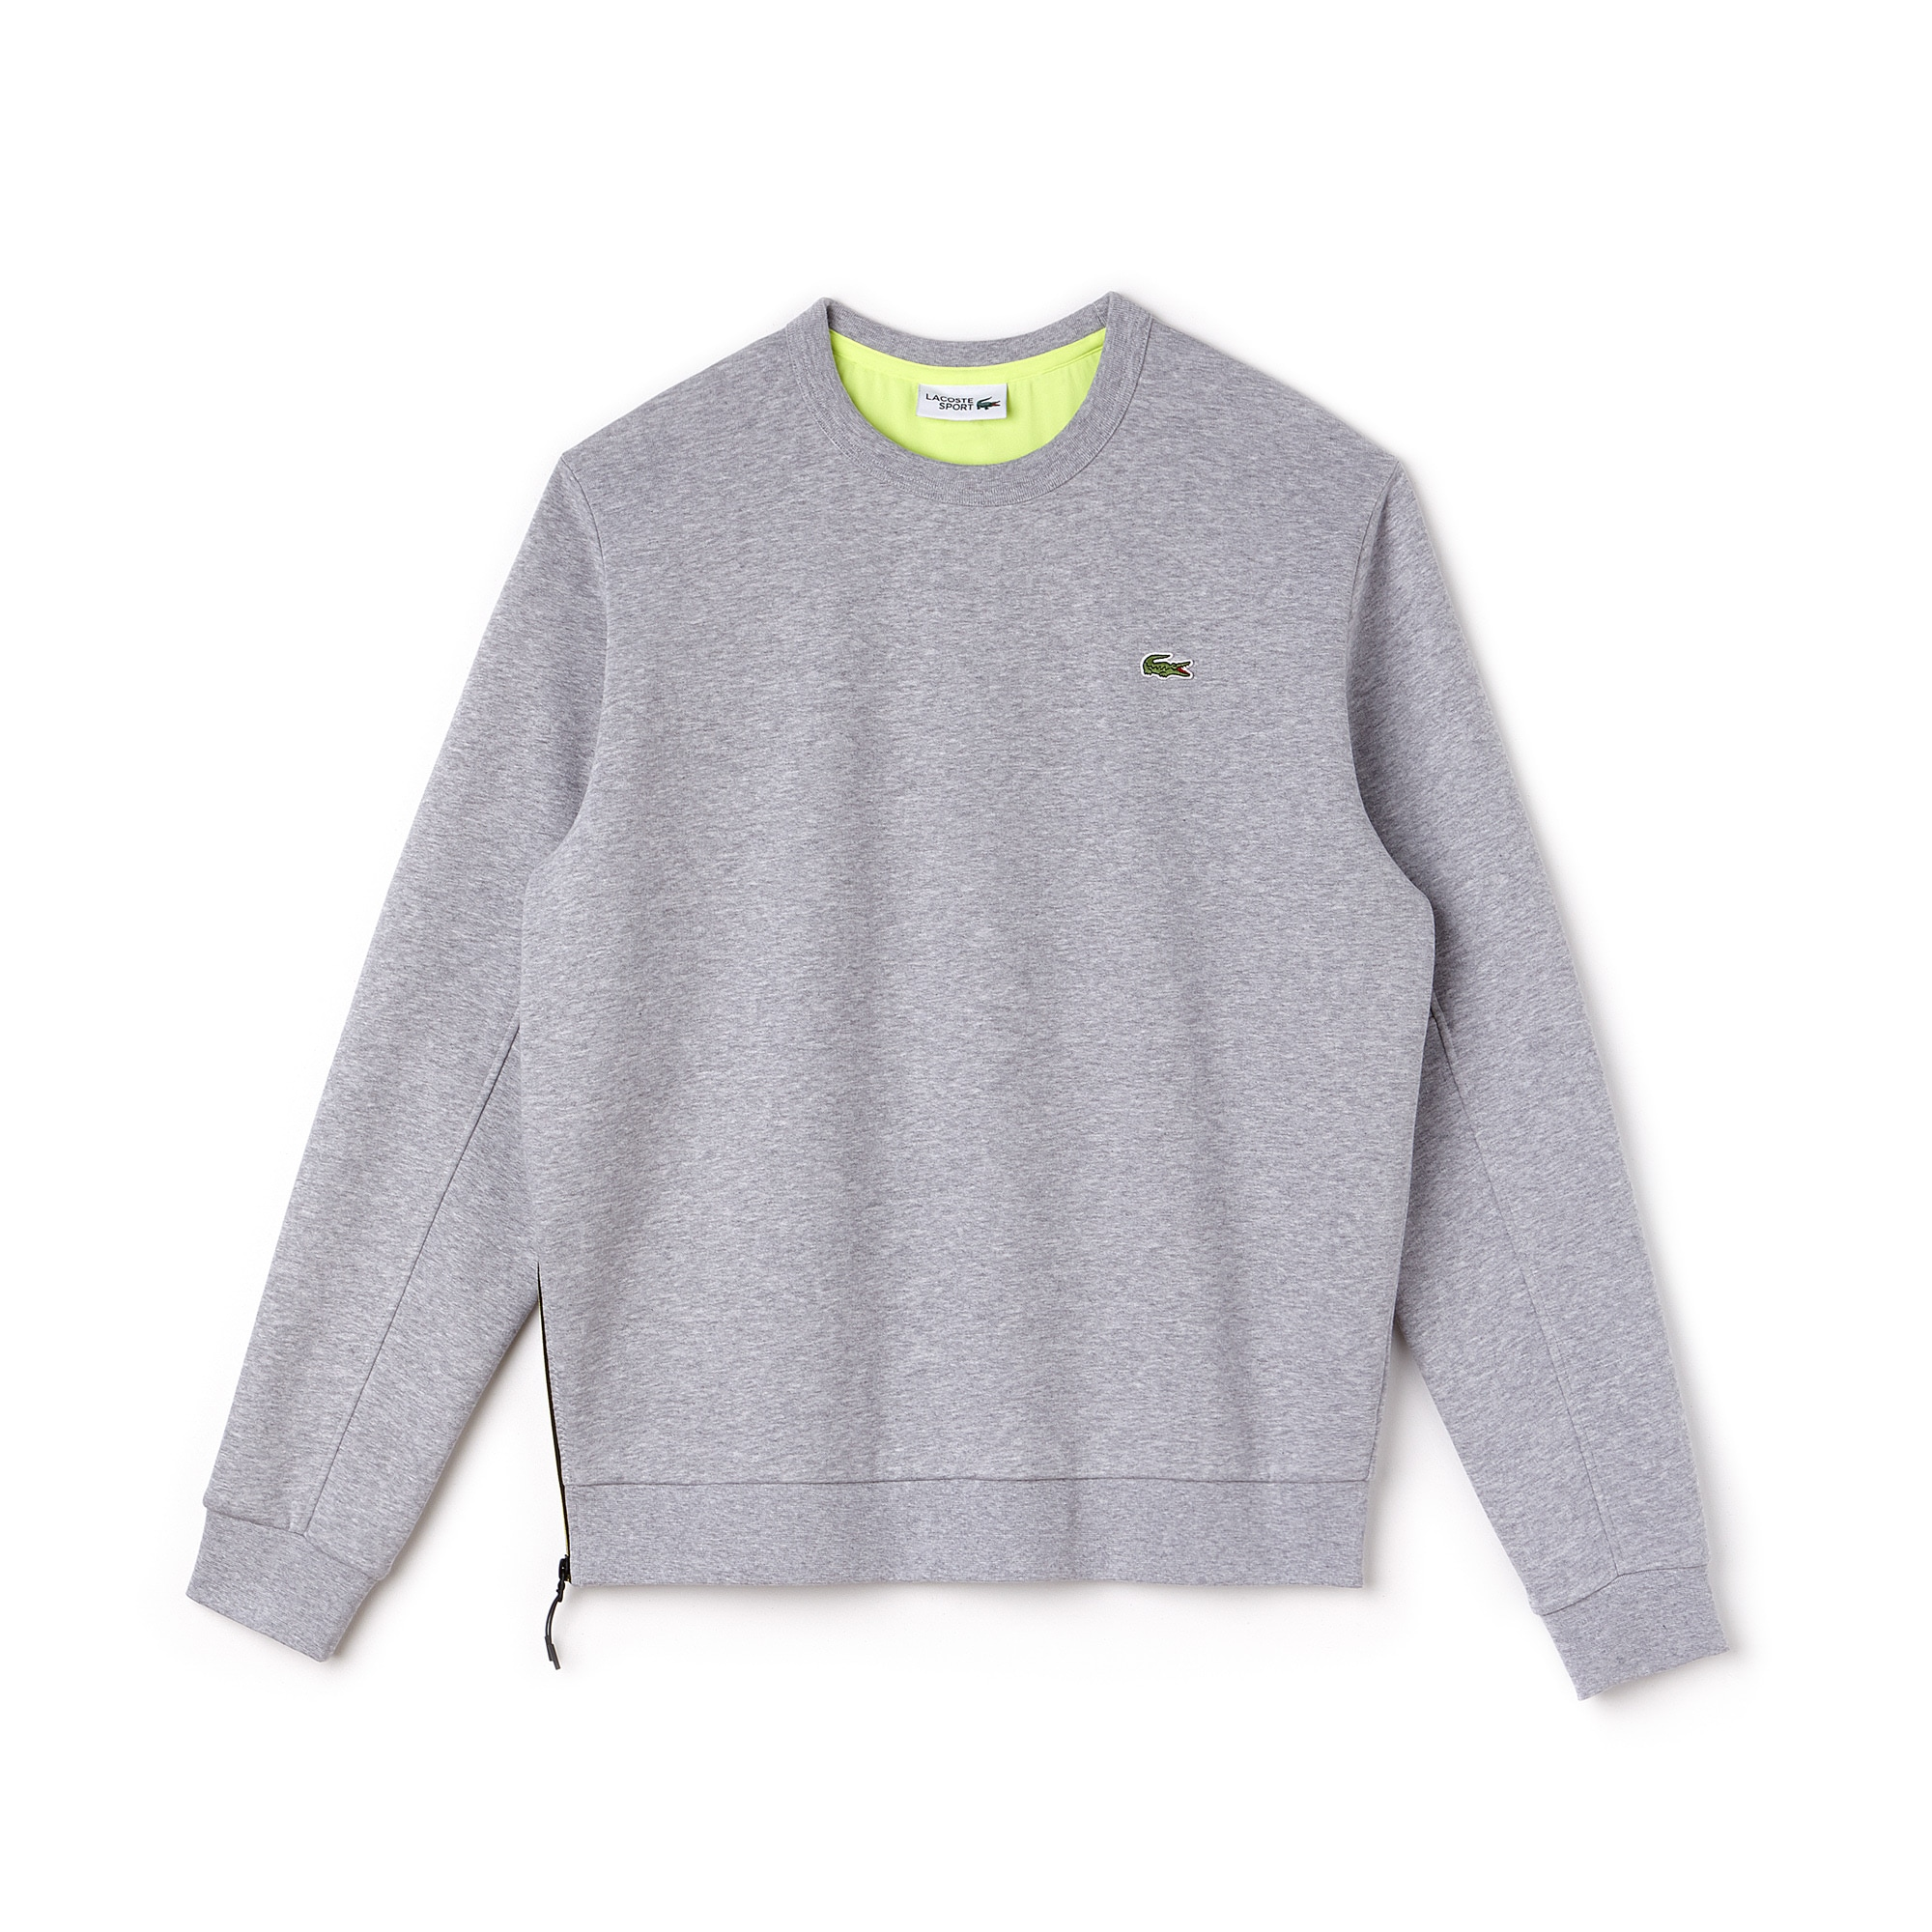 Men's Lacoste SPORT Side Zip Fleece Tennis Sweatshirt